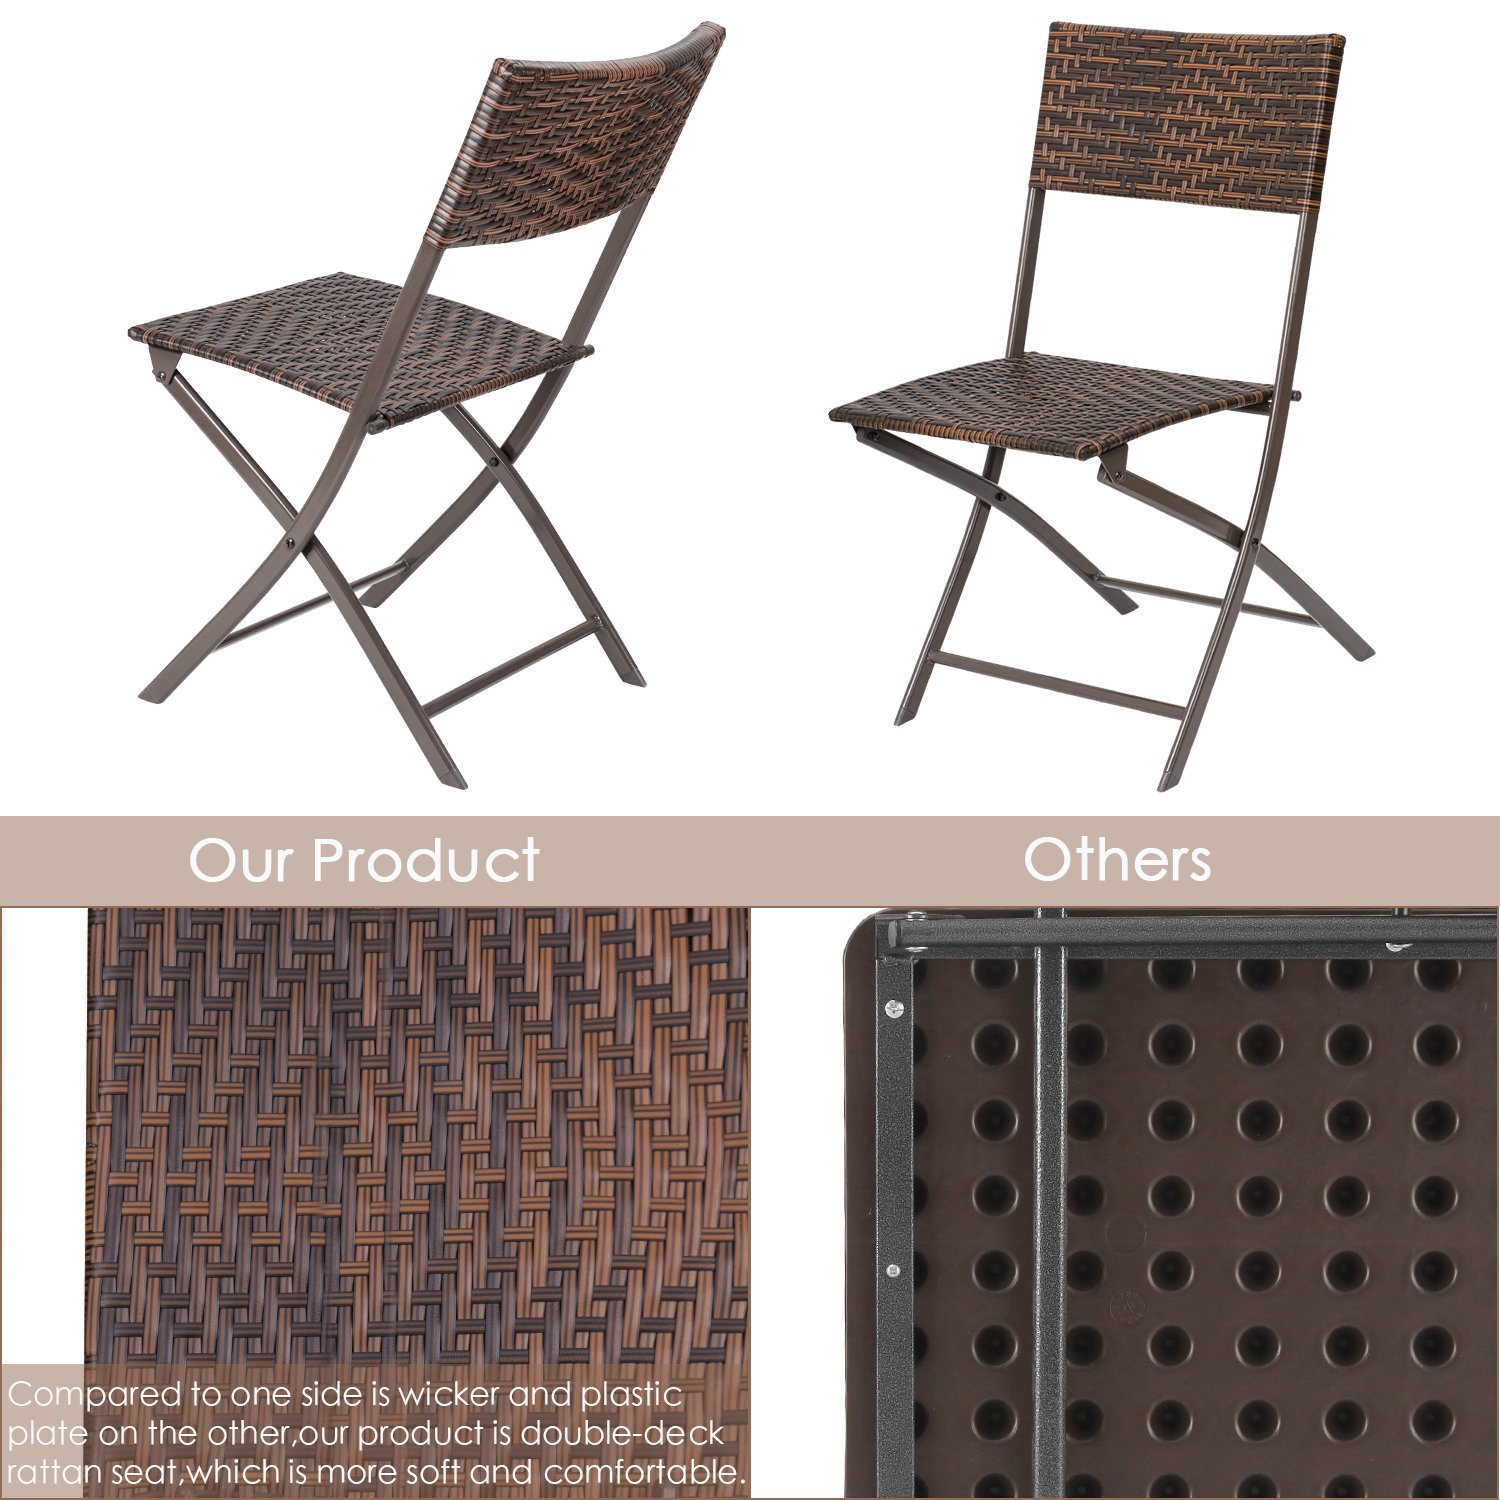 Flamaker Folding Patio Chairs PE Wicker Rattan Chair 4 Pieces Patio Furniture Set by Flamaker (Image #4)